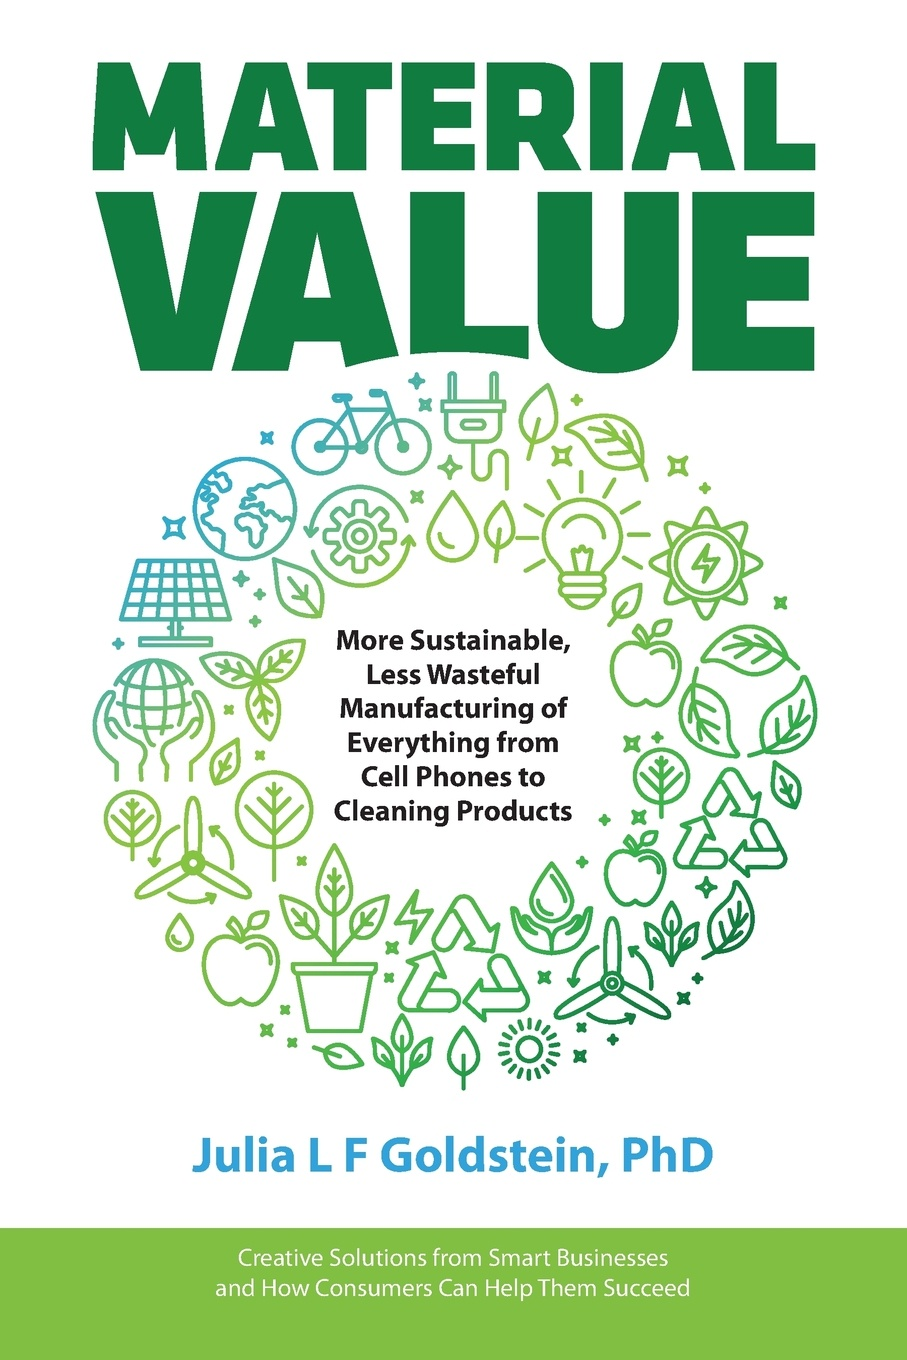 Julia L F Goldstein Material Value. More Sustainable, Less Wasteful Manufacturing of Everything from Cell Phones to Cleaning Products dave ulrich why the bottom line isn t how to build value through people and organization